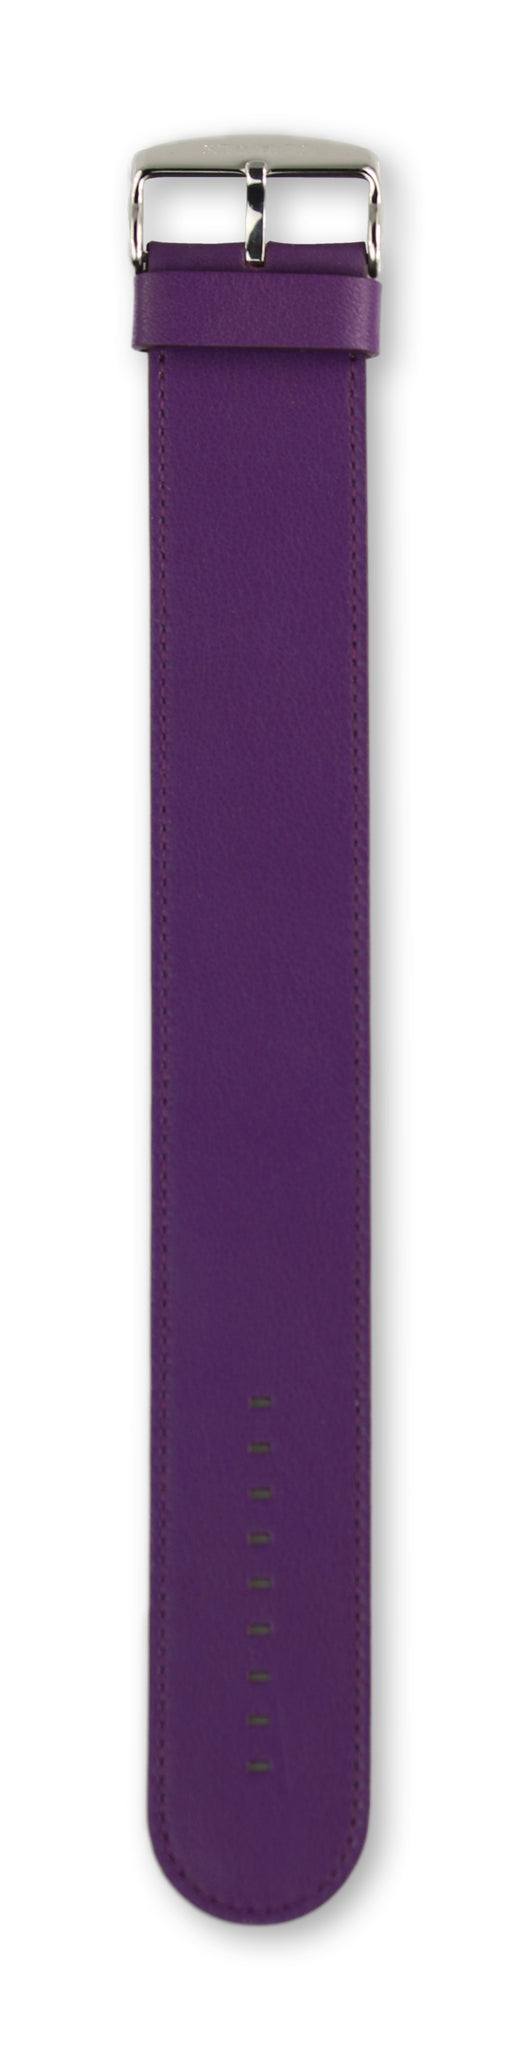 CLASSIC LEATHER VIOLET